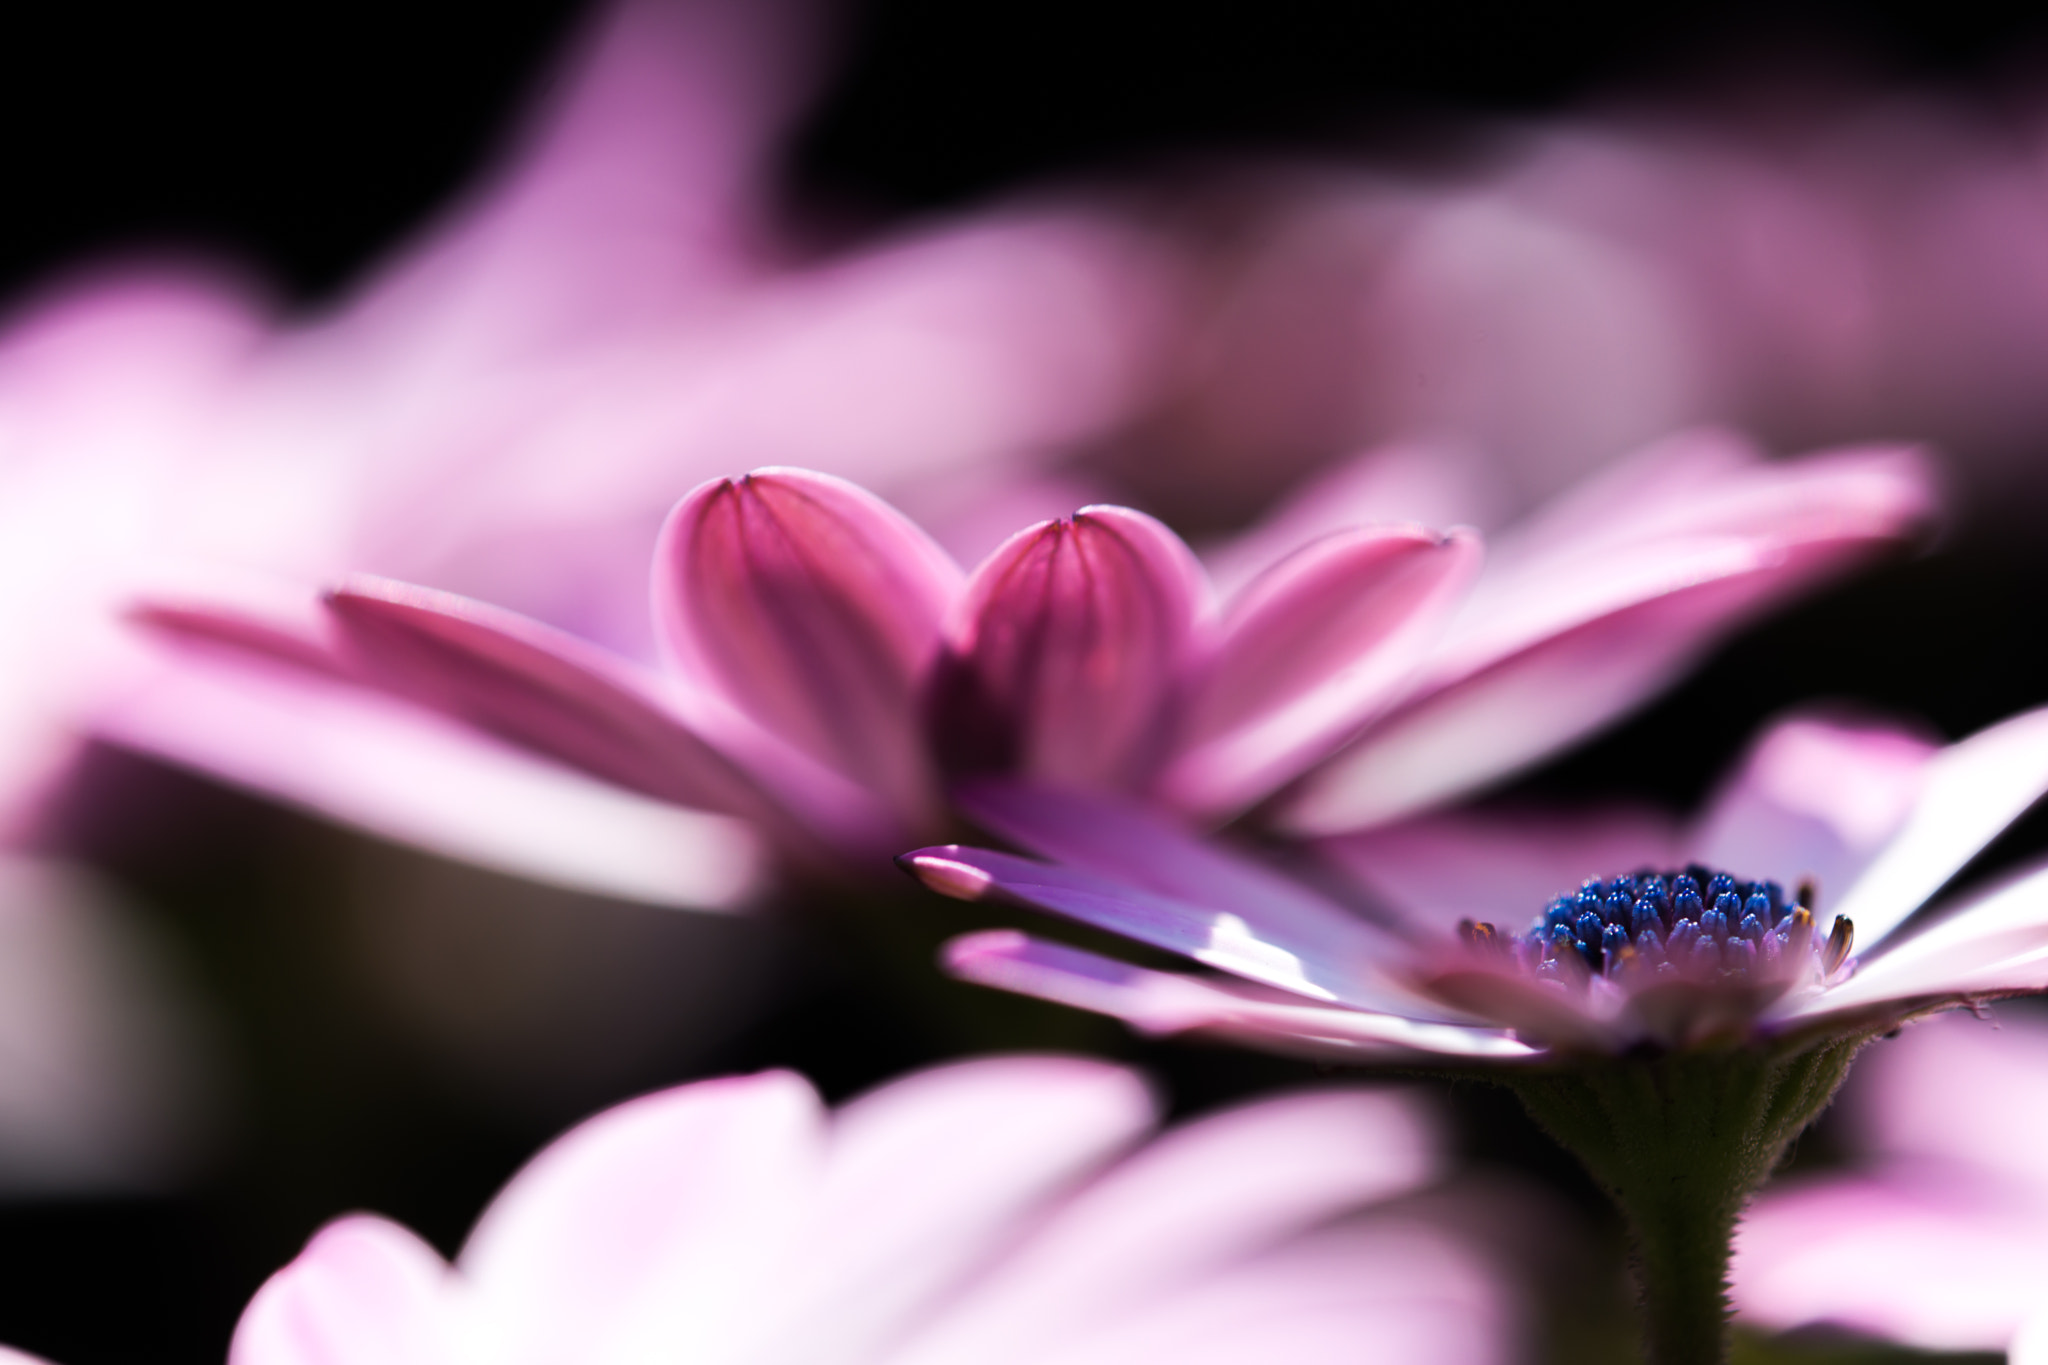 Photograph Osteospermum by marbee .info on 500px